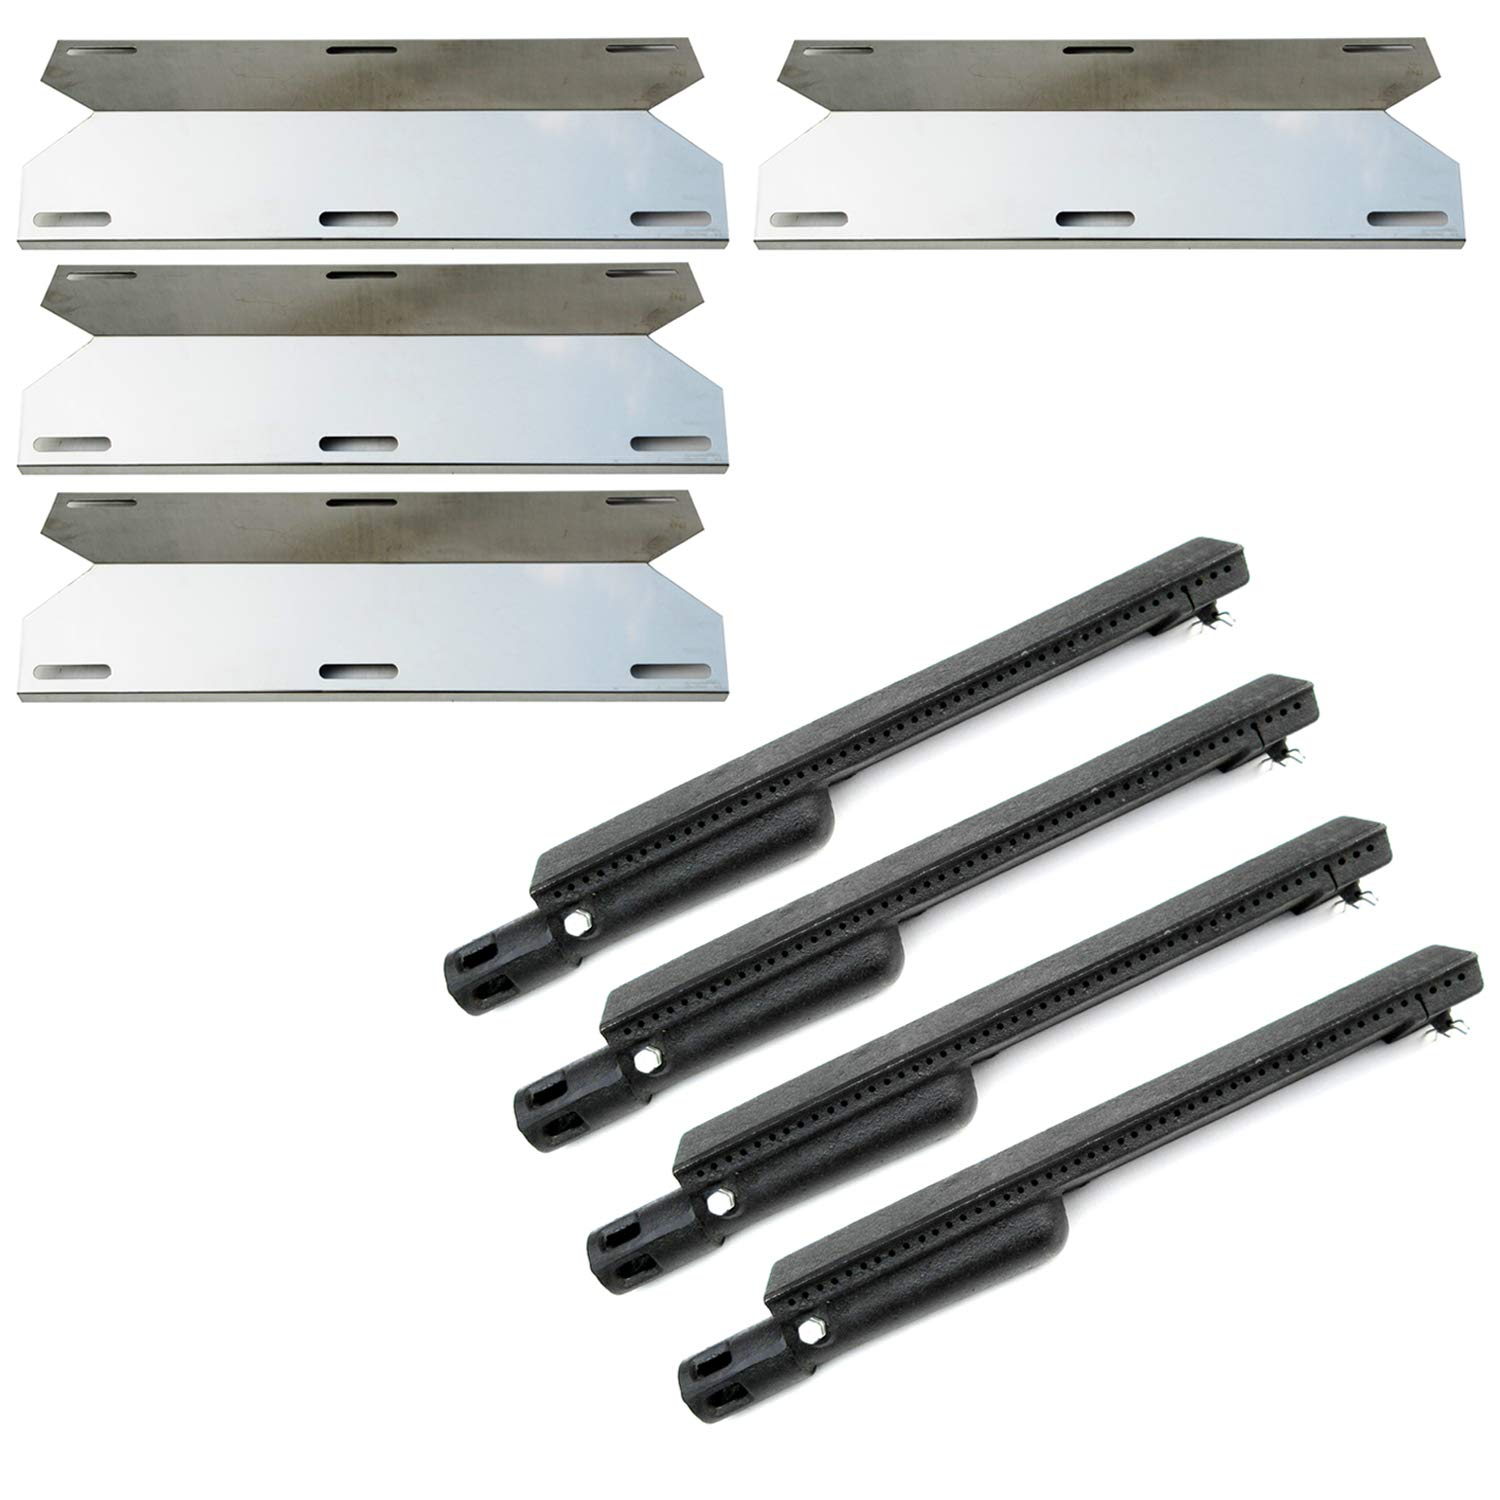 Direct store Parts Kit DG224 Replacement Jenn Air Gas Grill Repair Kit Gas Grill Burner and Heat Plate- 4 Pack (Cast Iron Burner + Stainless Steel heat plates)